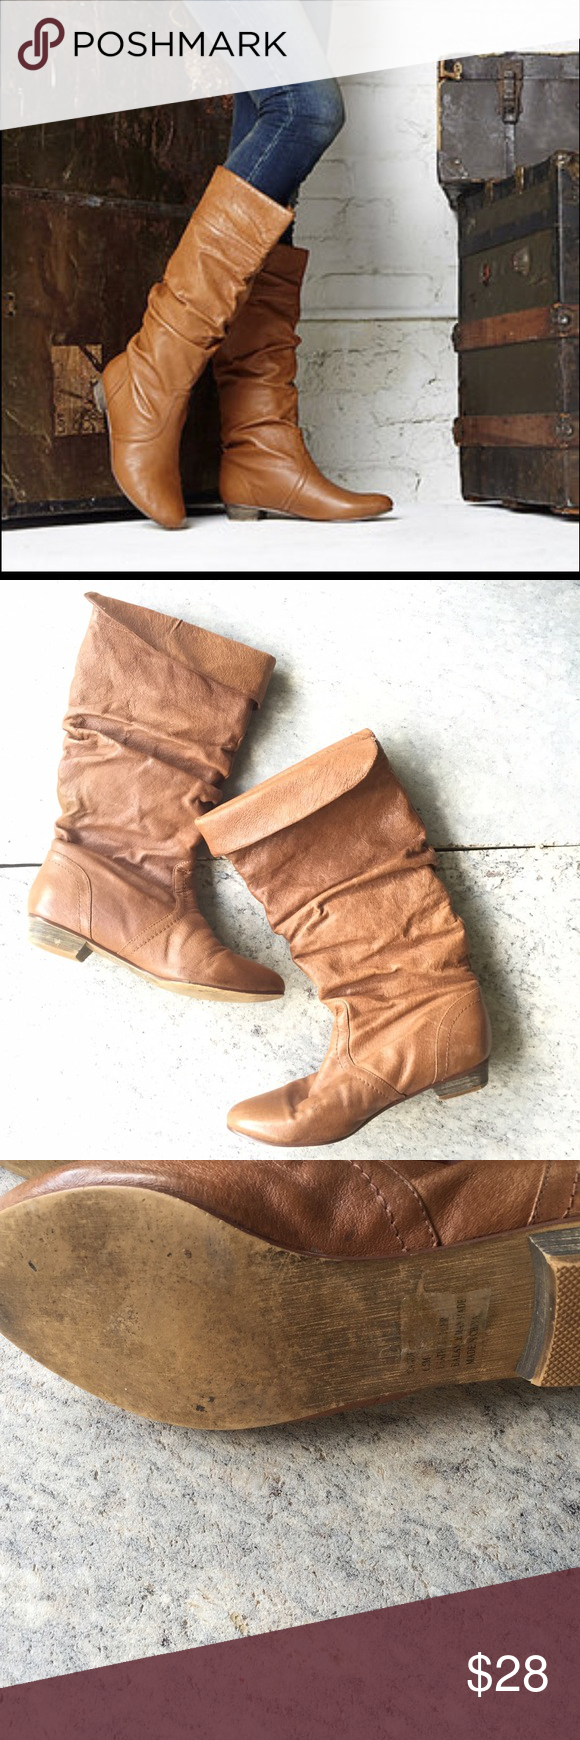 Steve Madden cadence leather boots brown size 6.5 Steve Madden cadence tan brown boots in a 6.5. These shoes feature a minimal heel with the option to fold over at top or wear higher. These slouchy boots are for the season! Leather. Great condition, do have a couple scuffs and marks but doesn't take away from overall look. Steve Madden Shoes Heeled Boots